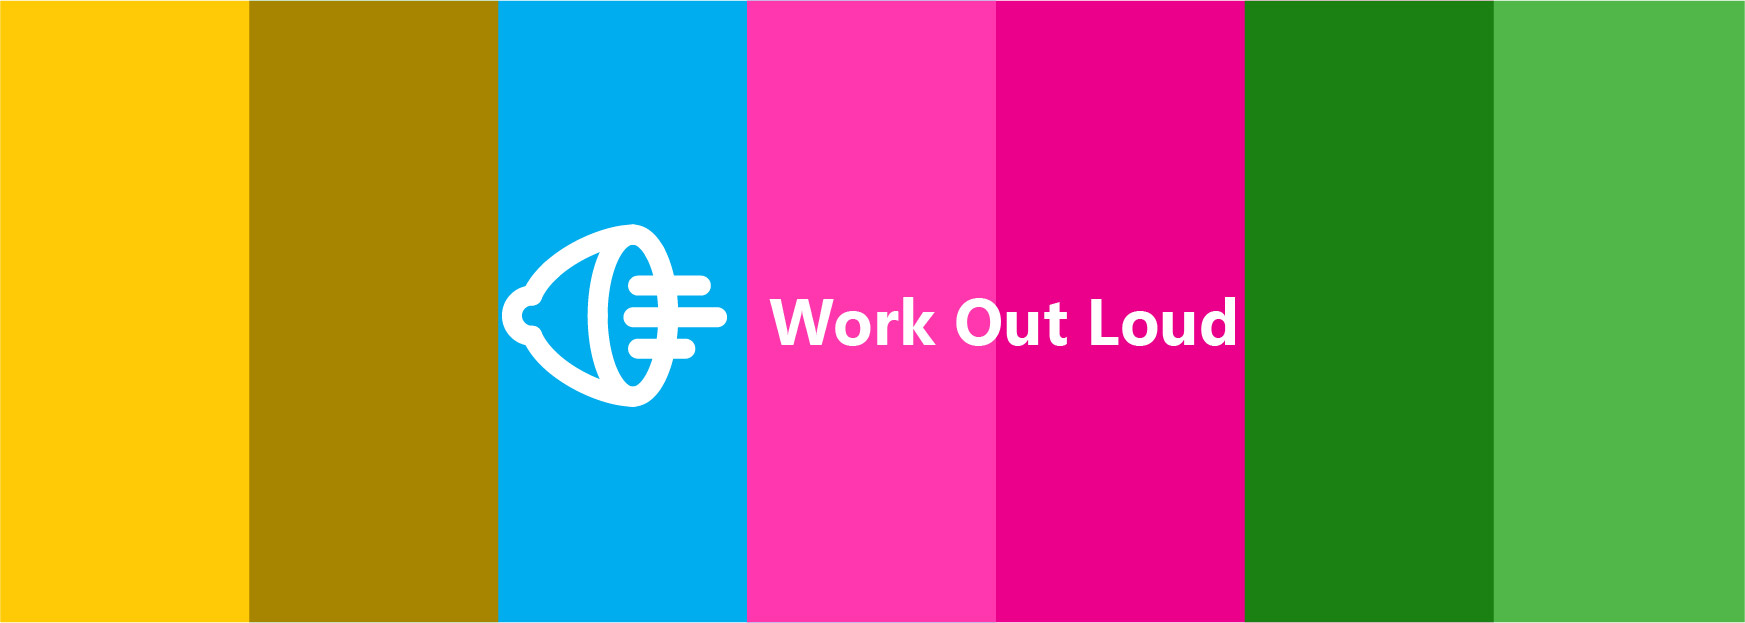 Loudspeaker banner Work Out Loud